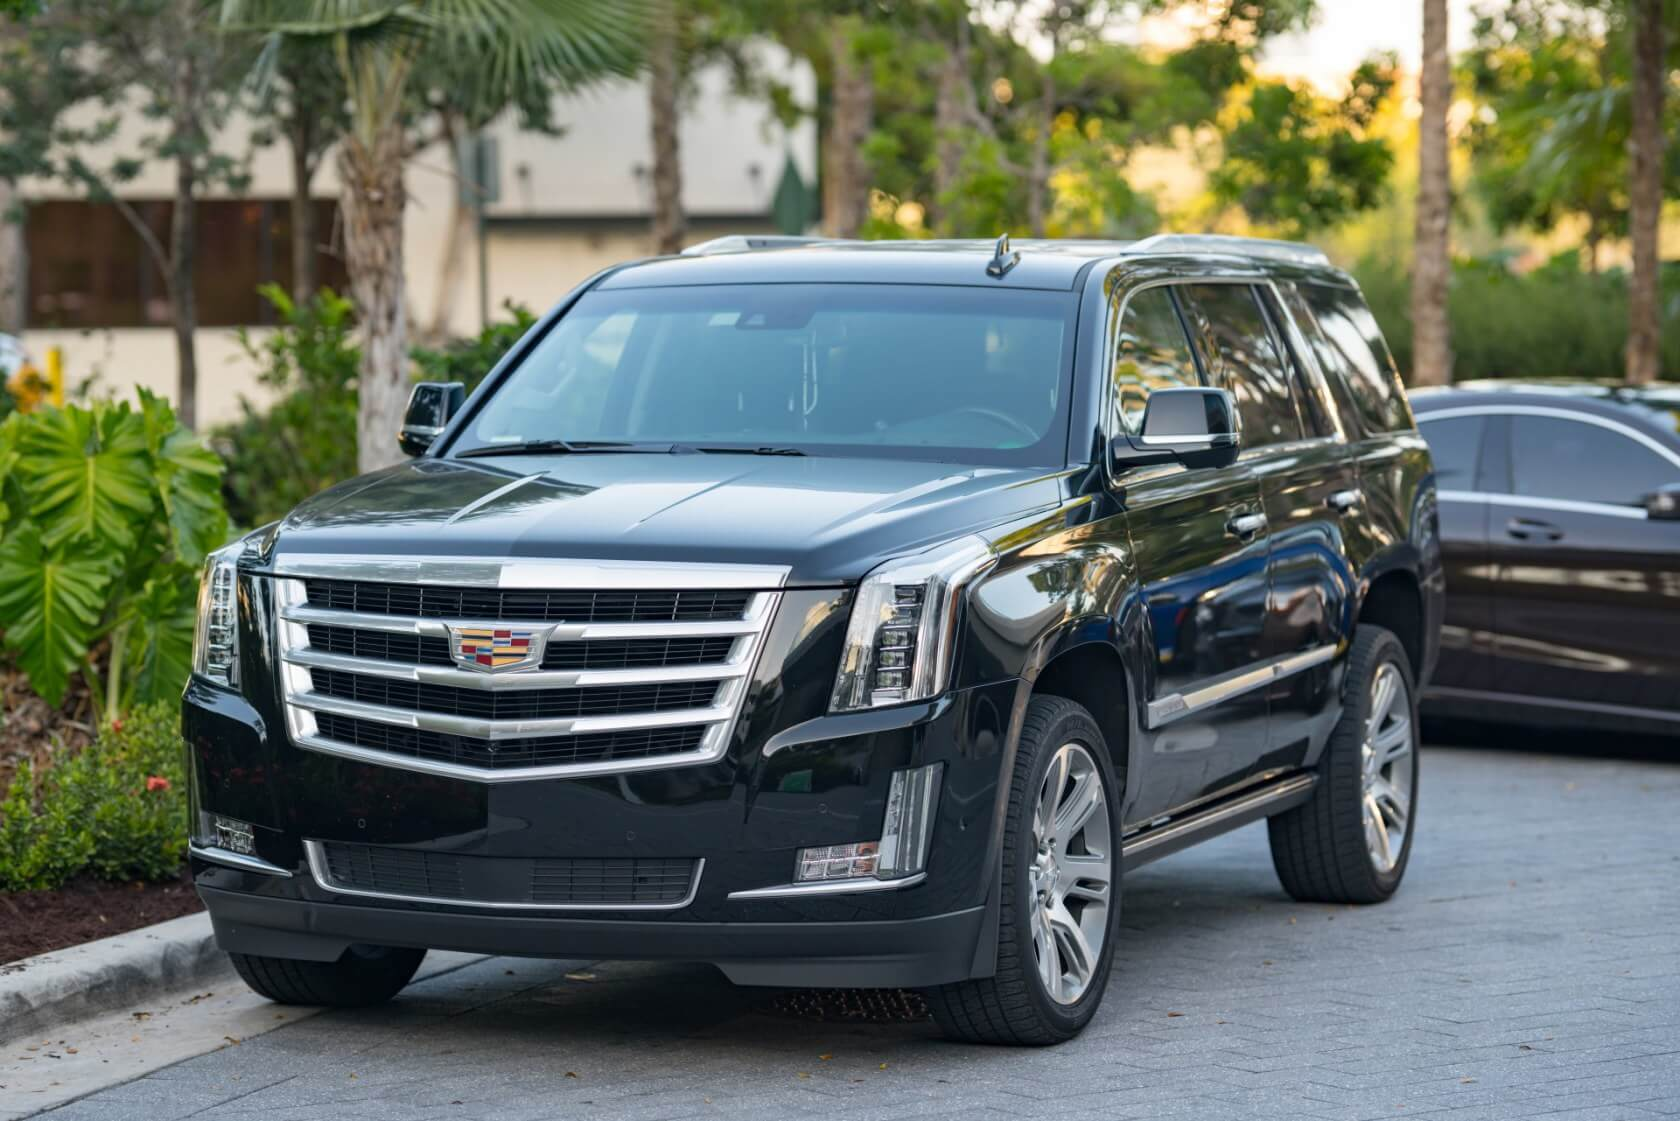 Cadillac Escalade slated to become the world's first 8k vehicle